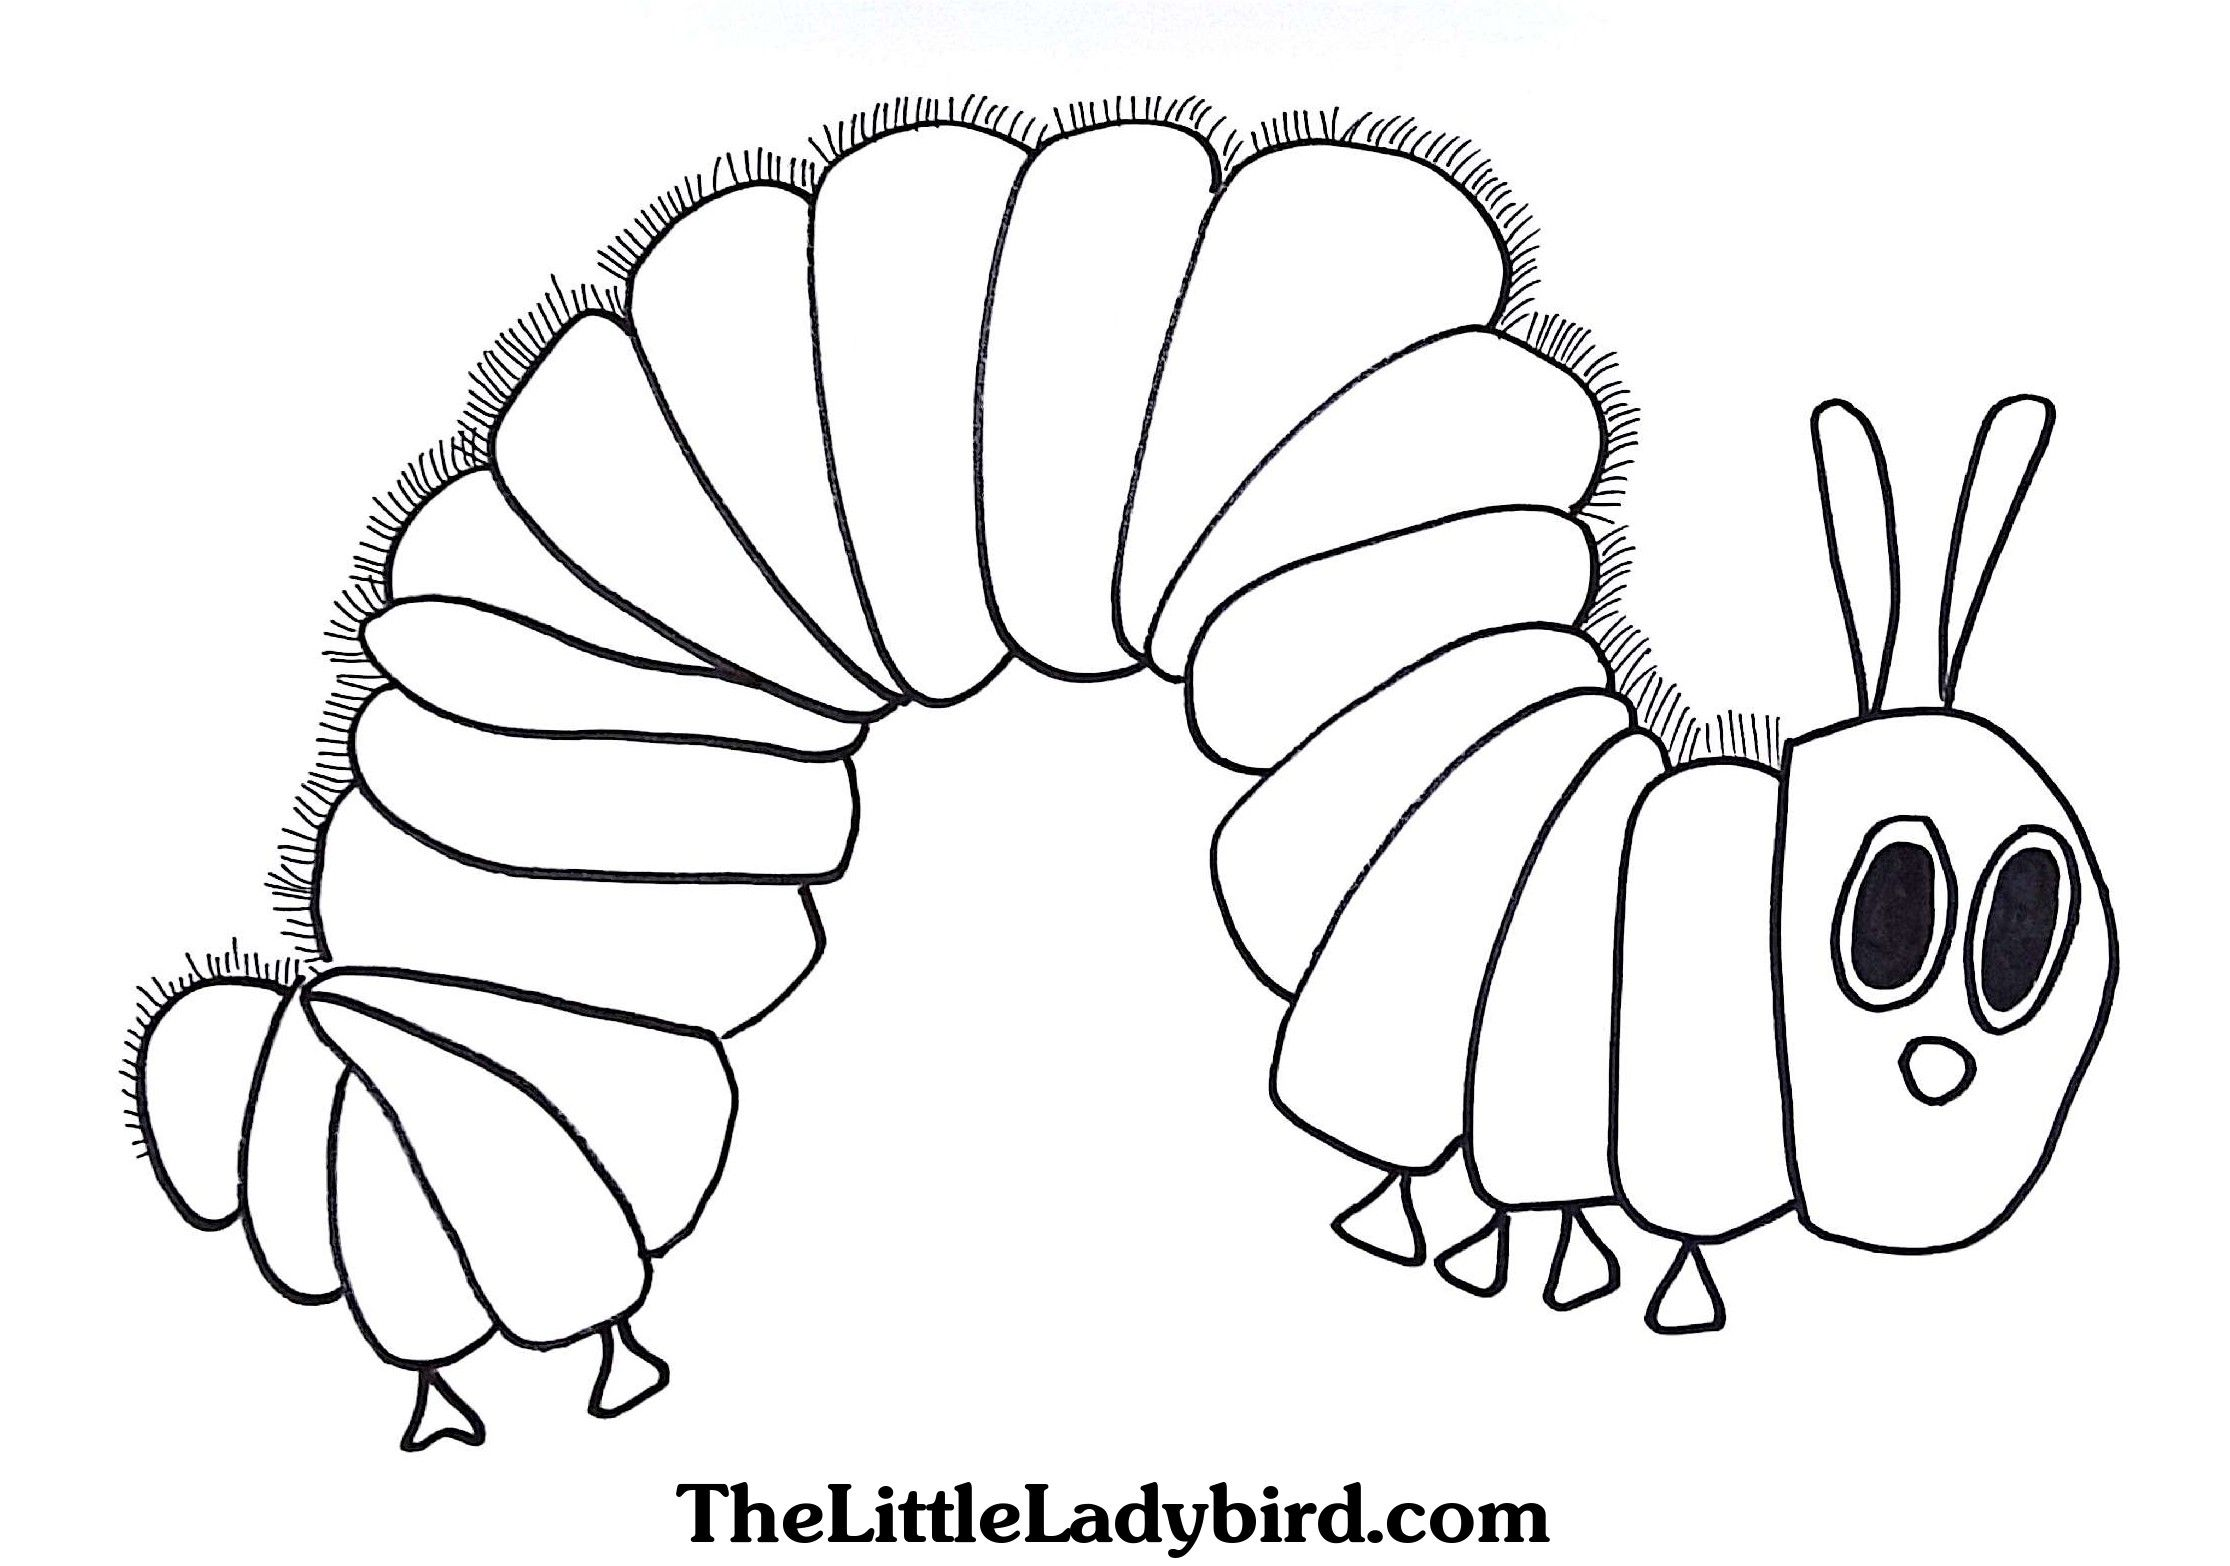 Hungry Caterpillar Coloring Pages Free The Hungry Caterpillar Coloring Page Thelittleladybird Entitlementtrap Com Cat Coloring Book Butterfly Coloring Page Hungry Caterpillar